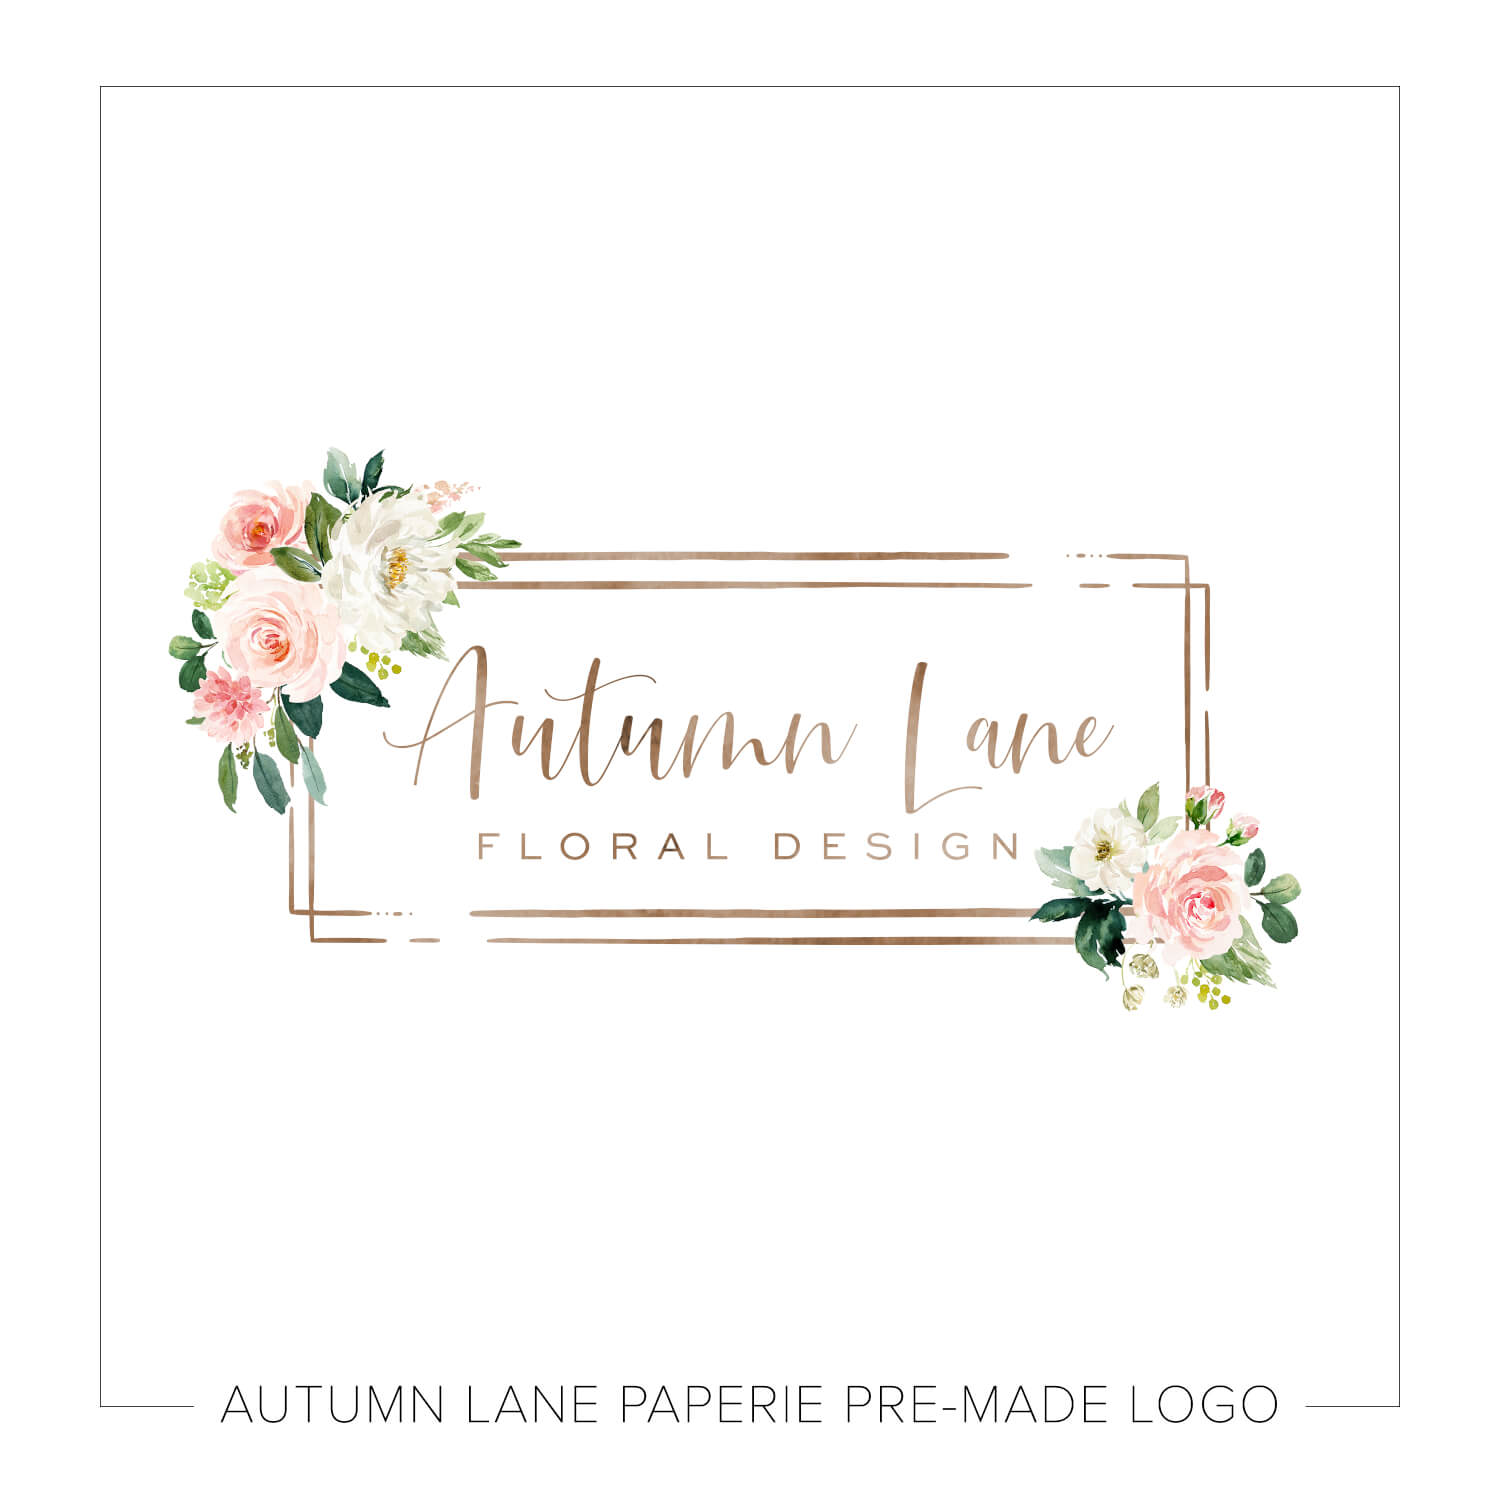 Rustic Pink And White Flower Frame Logo M37 Autumn Lane Paperie